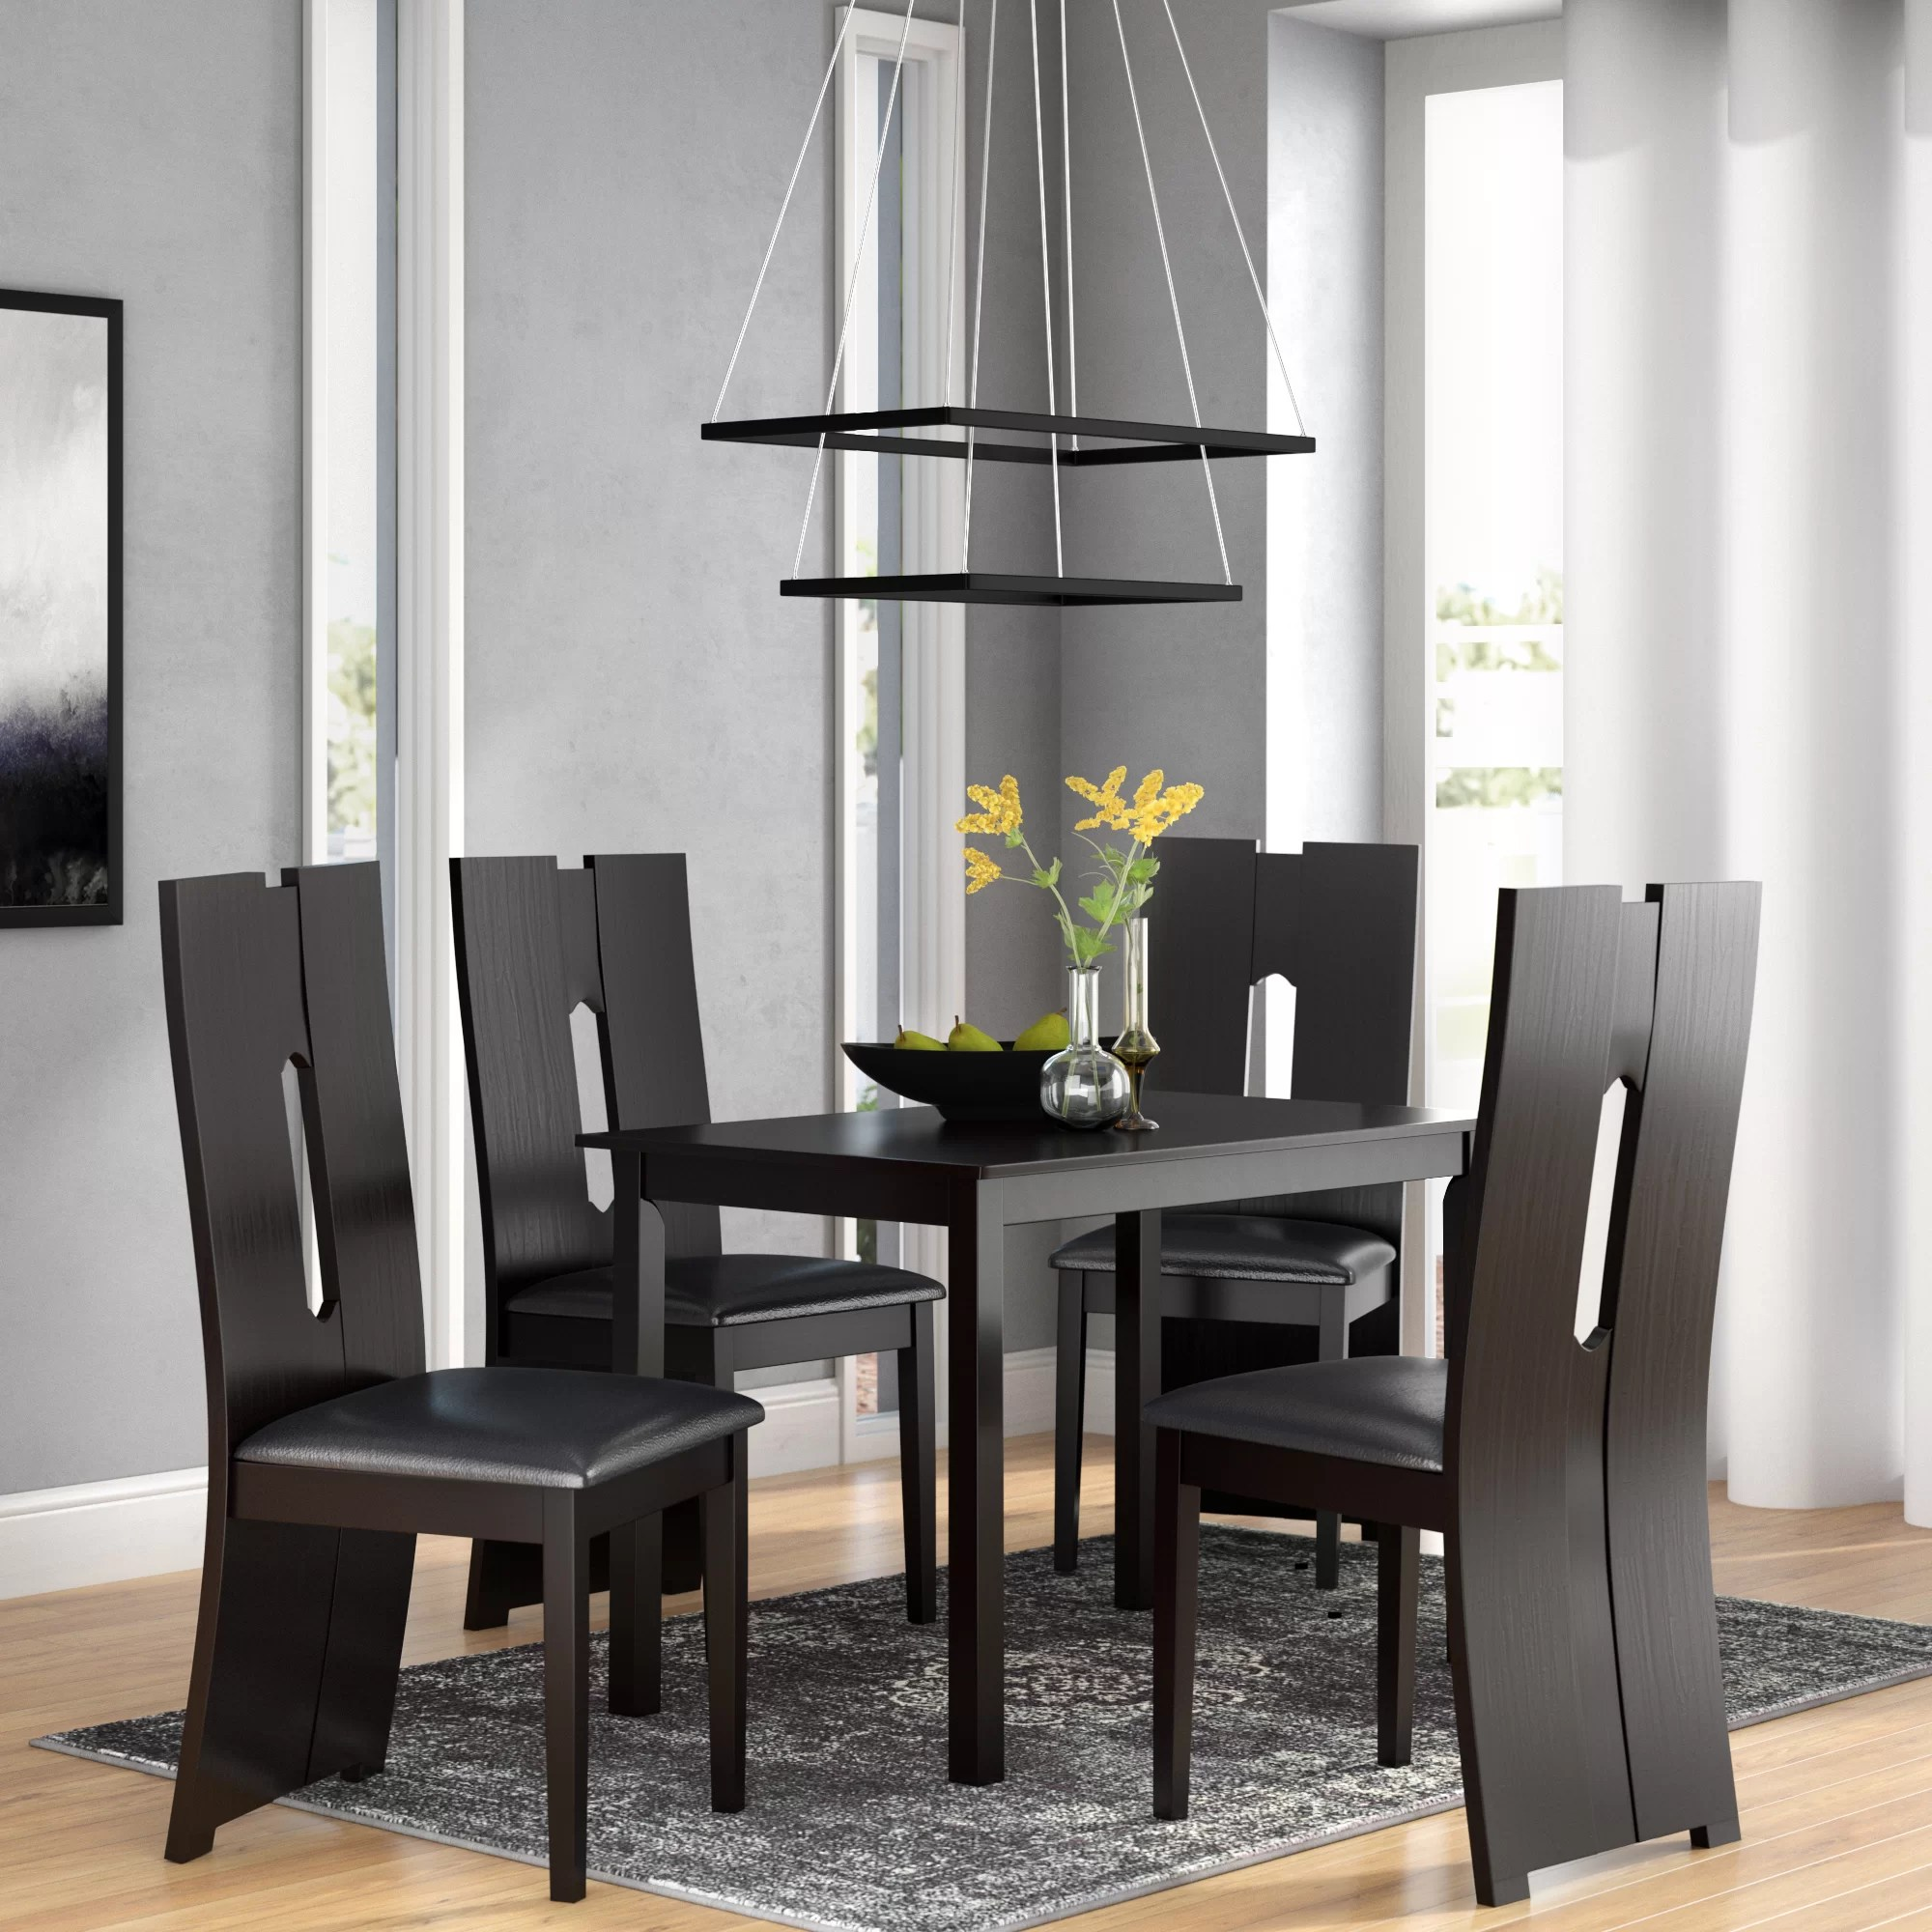 Modern Dining Set Onsted Modern And Contemporary 5 Piece Breakfast Nook Dining Set